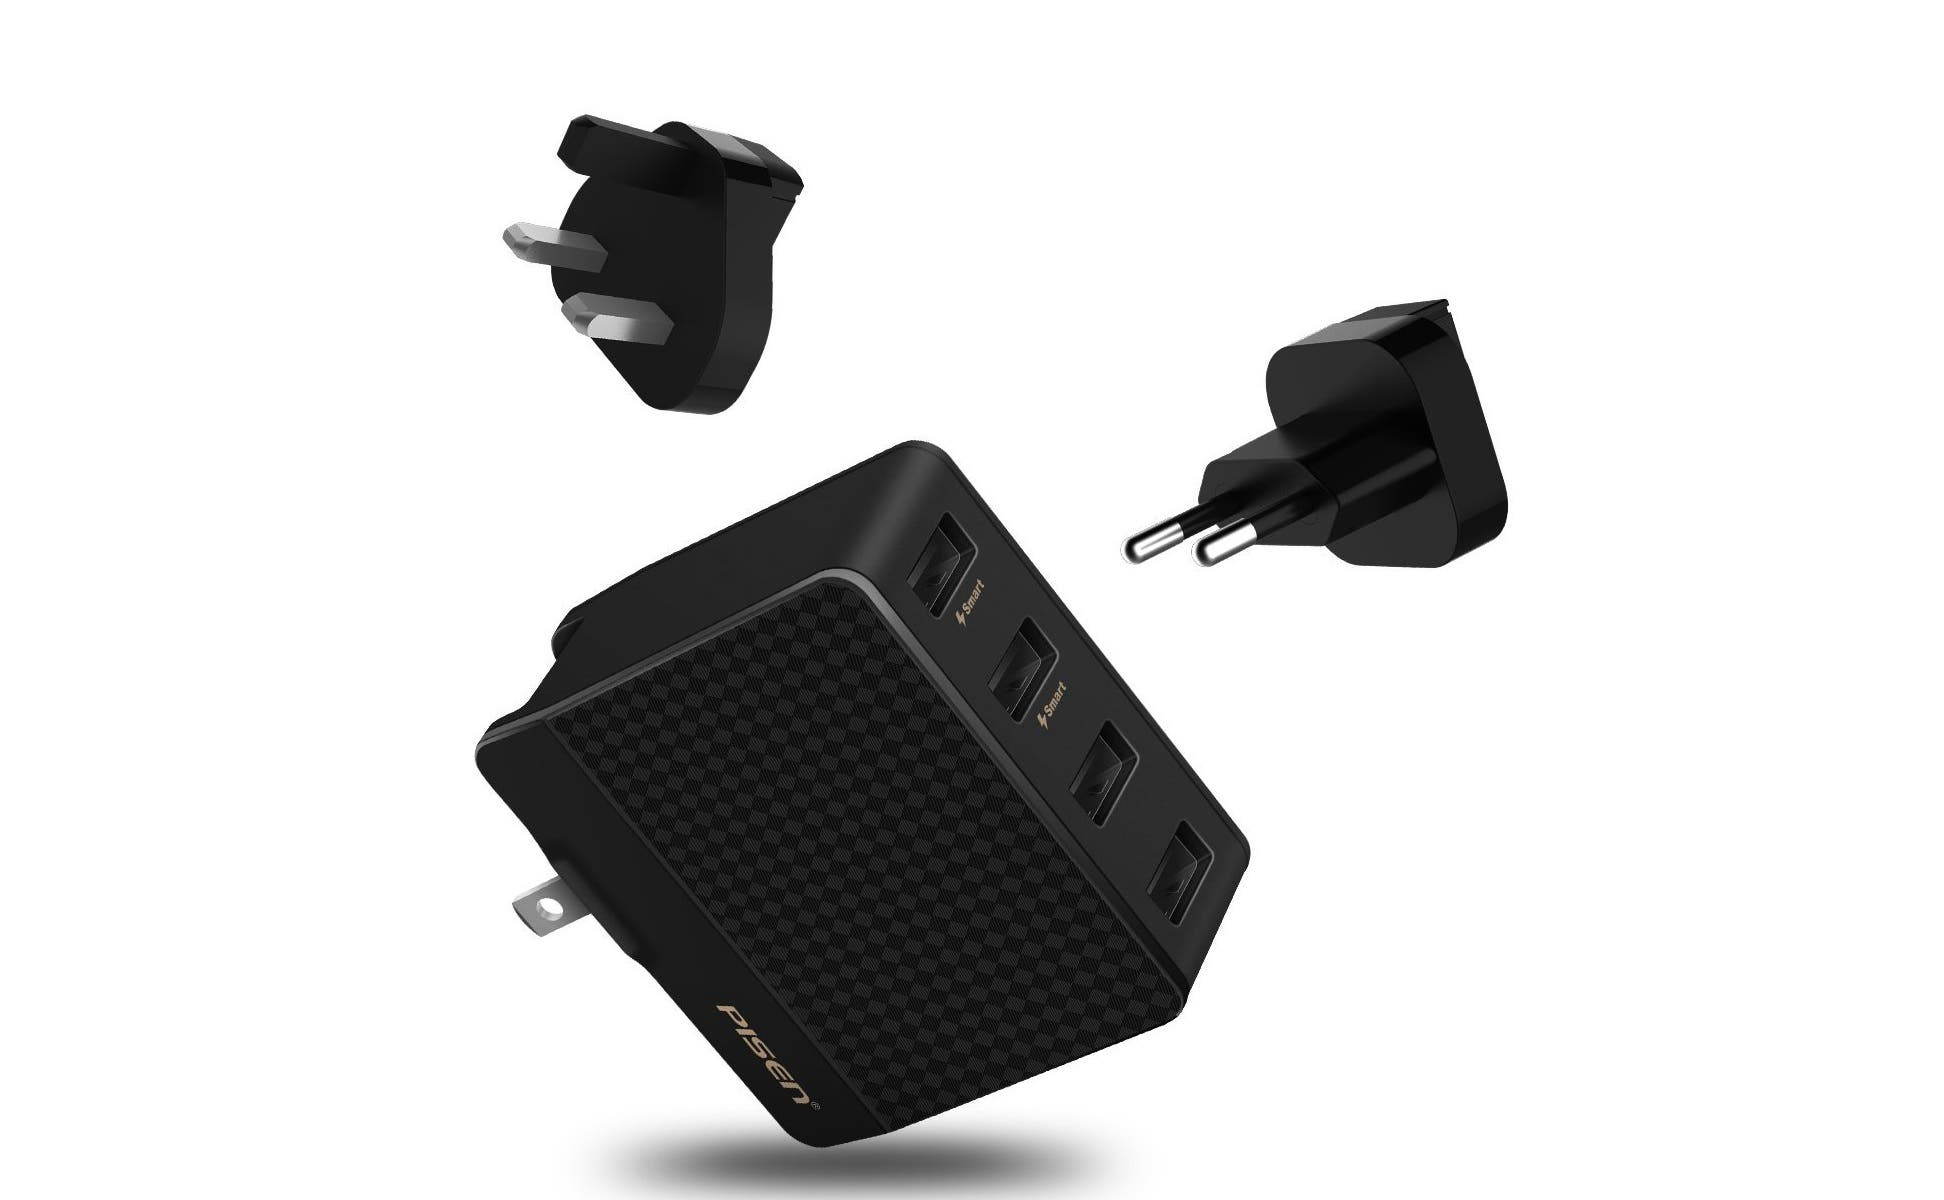 Pisen All-in-One Travel Plug Charger